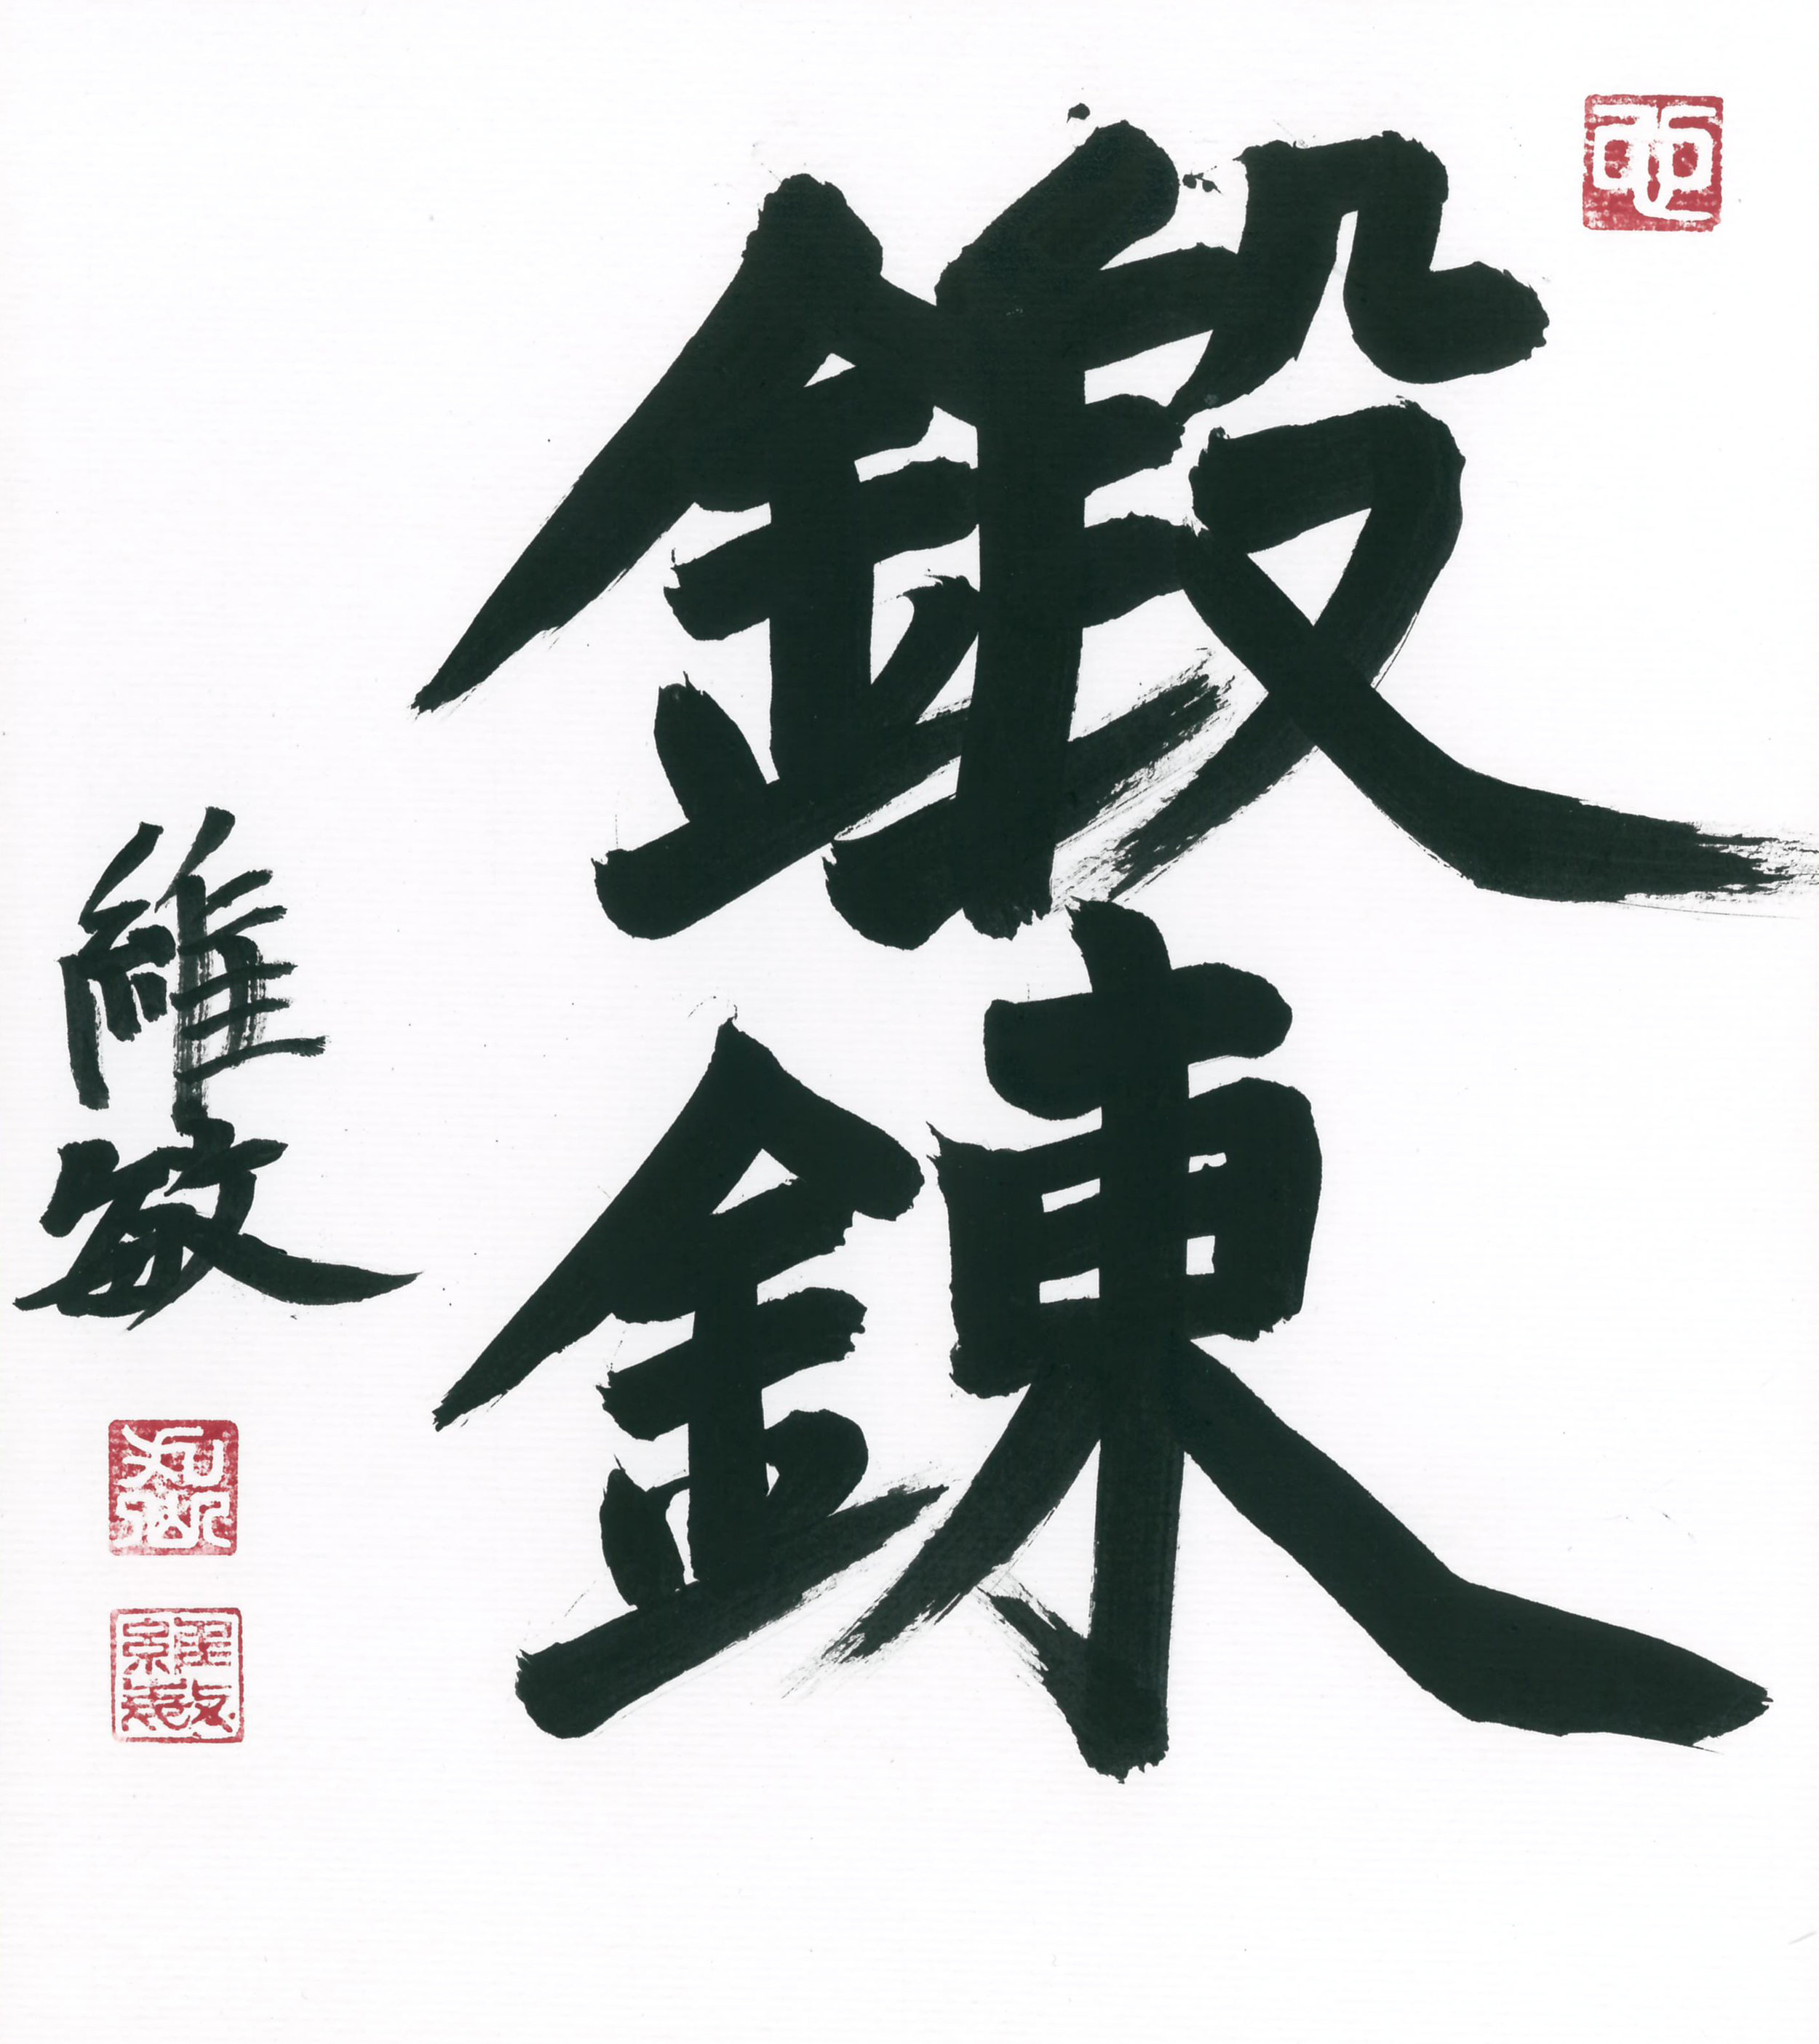 The calligraphy of tanren drawn by Maruyama Sensei. Tanren means to forge the spirit.